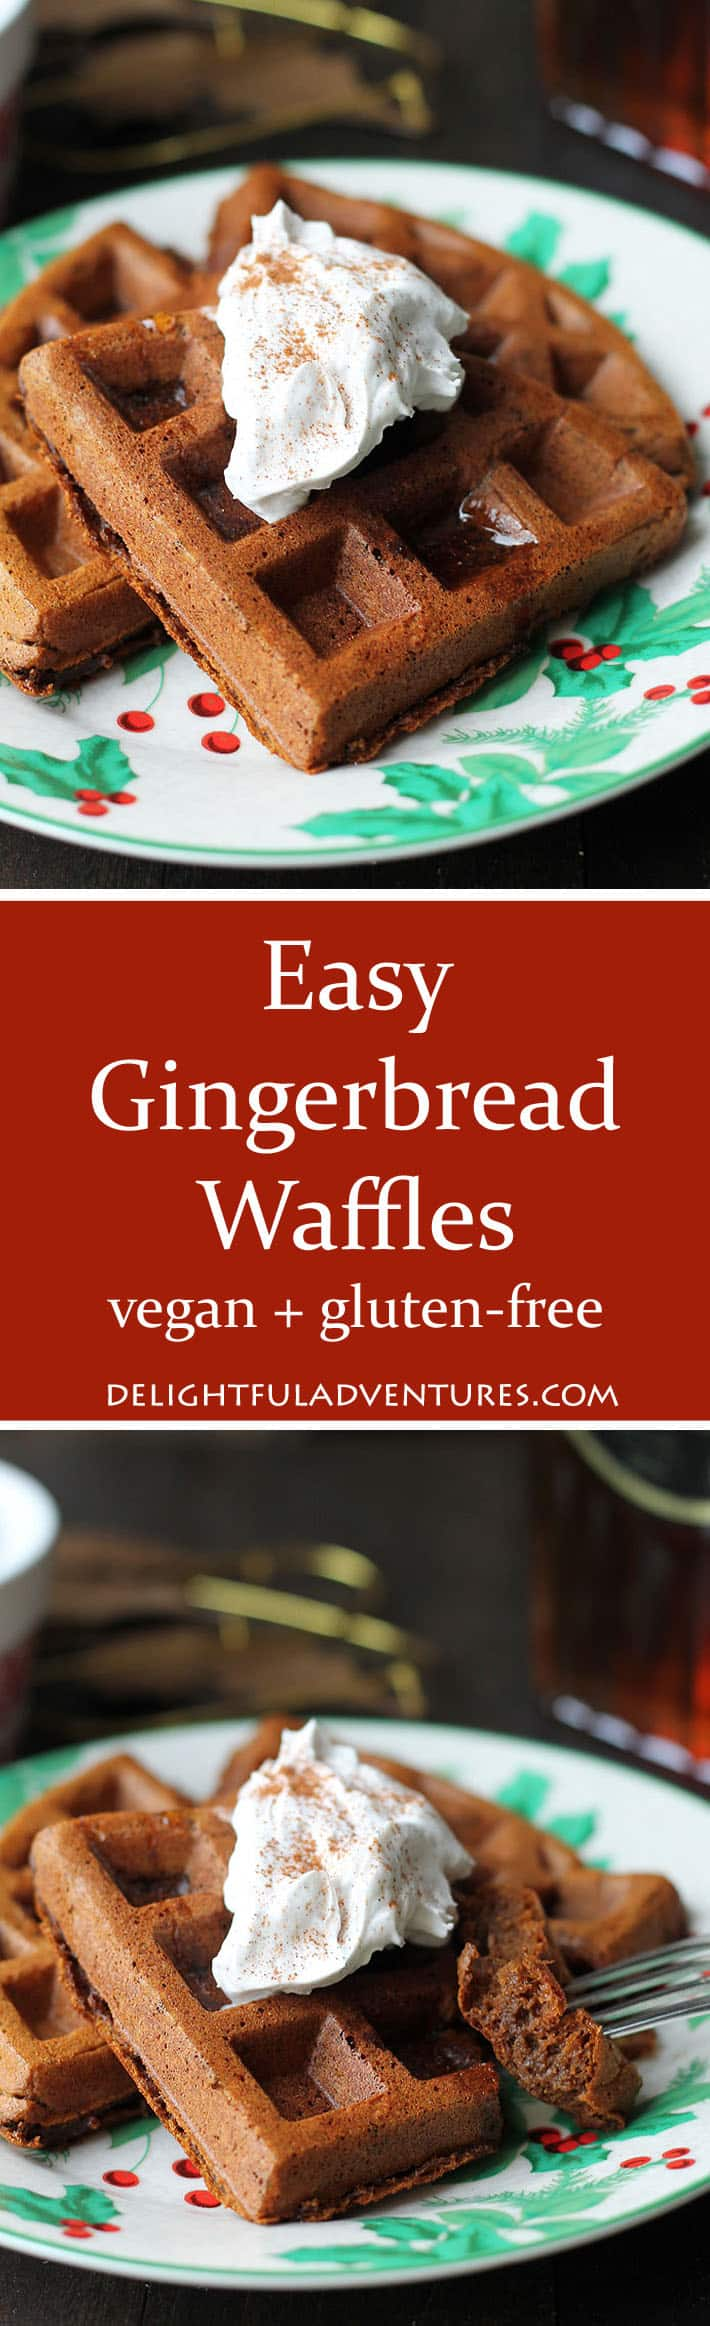 This recipe for easy vegan gluten free gingerbread waffles are a great breakfast idea for Christmas morning (or any other morning during the holidays!). #veganglutenfree #gingerbreadwaffles #veganwaffles #glutenfreewaffles #veganbreakfast